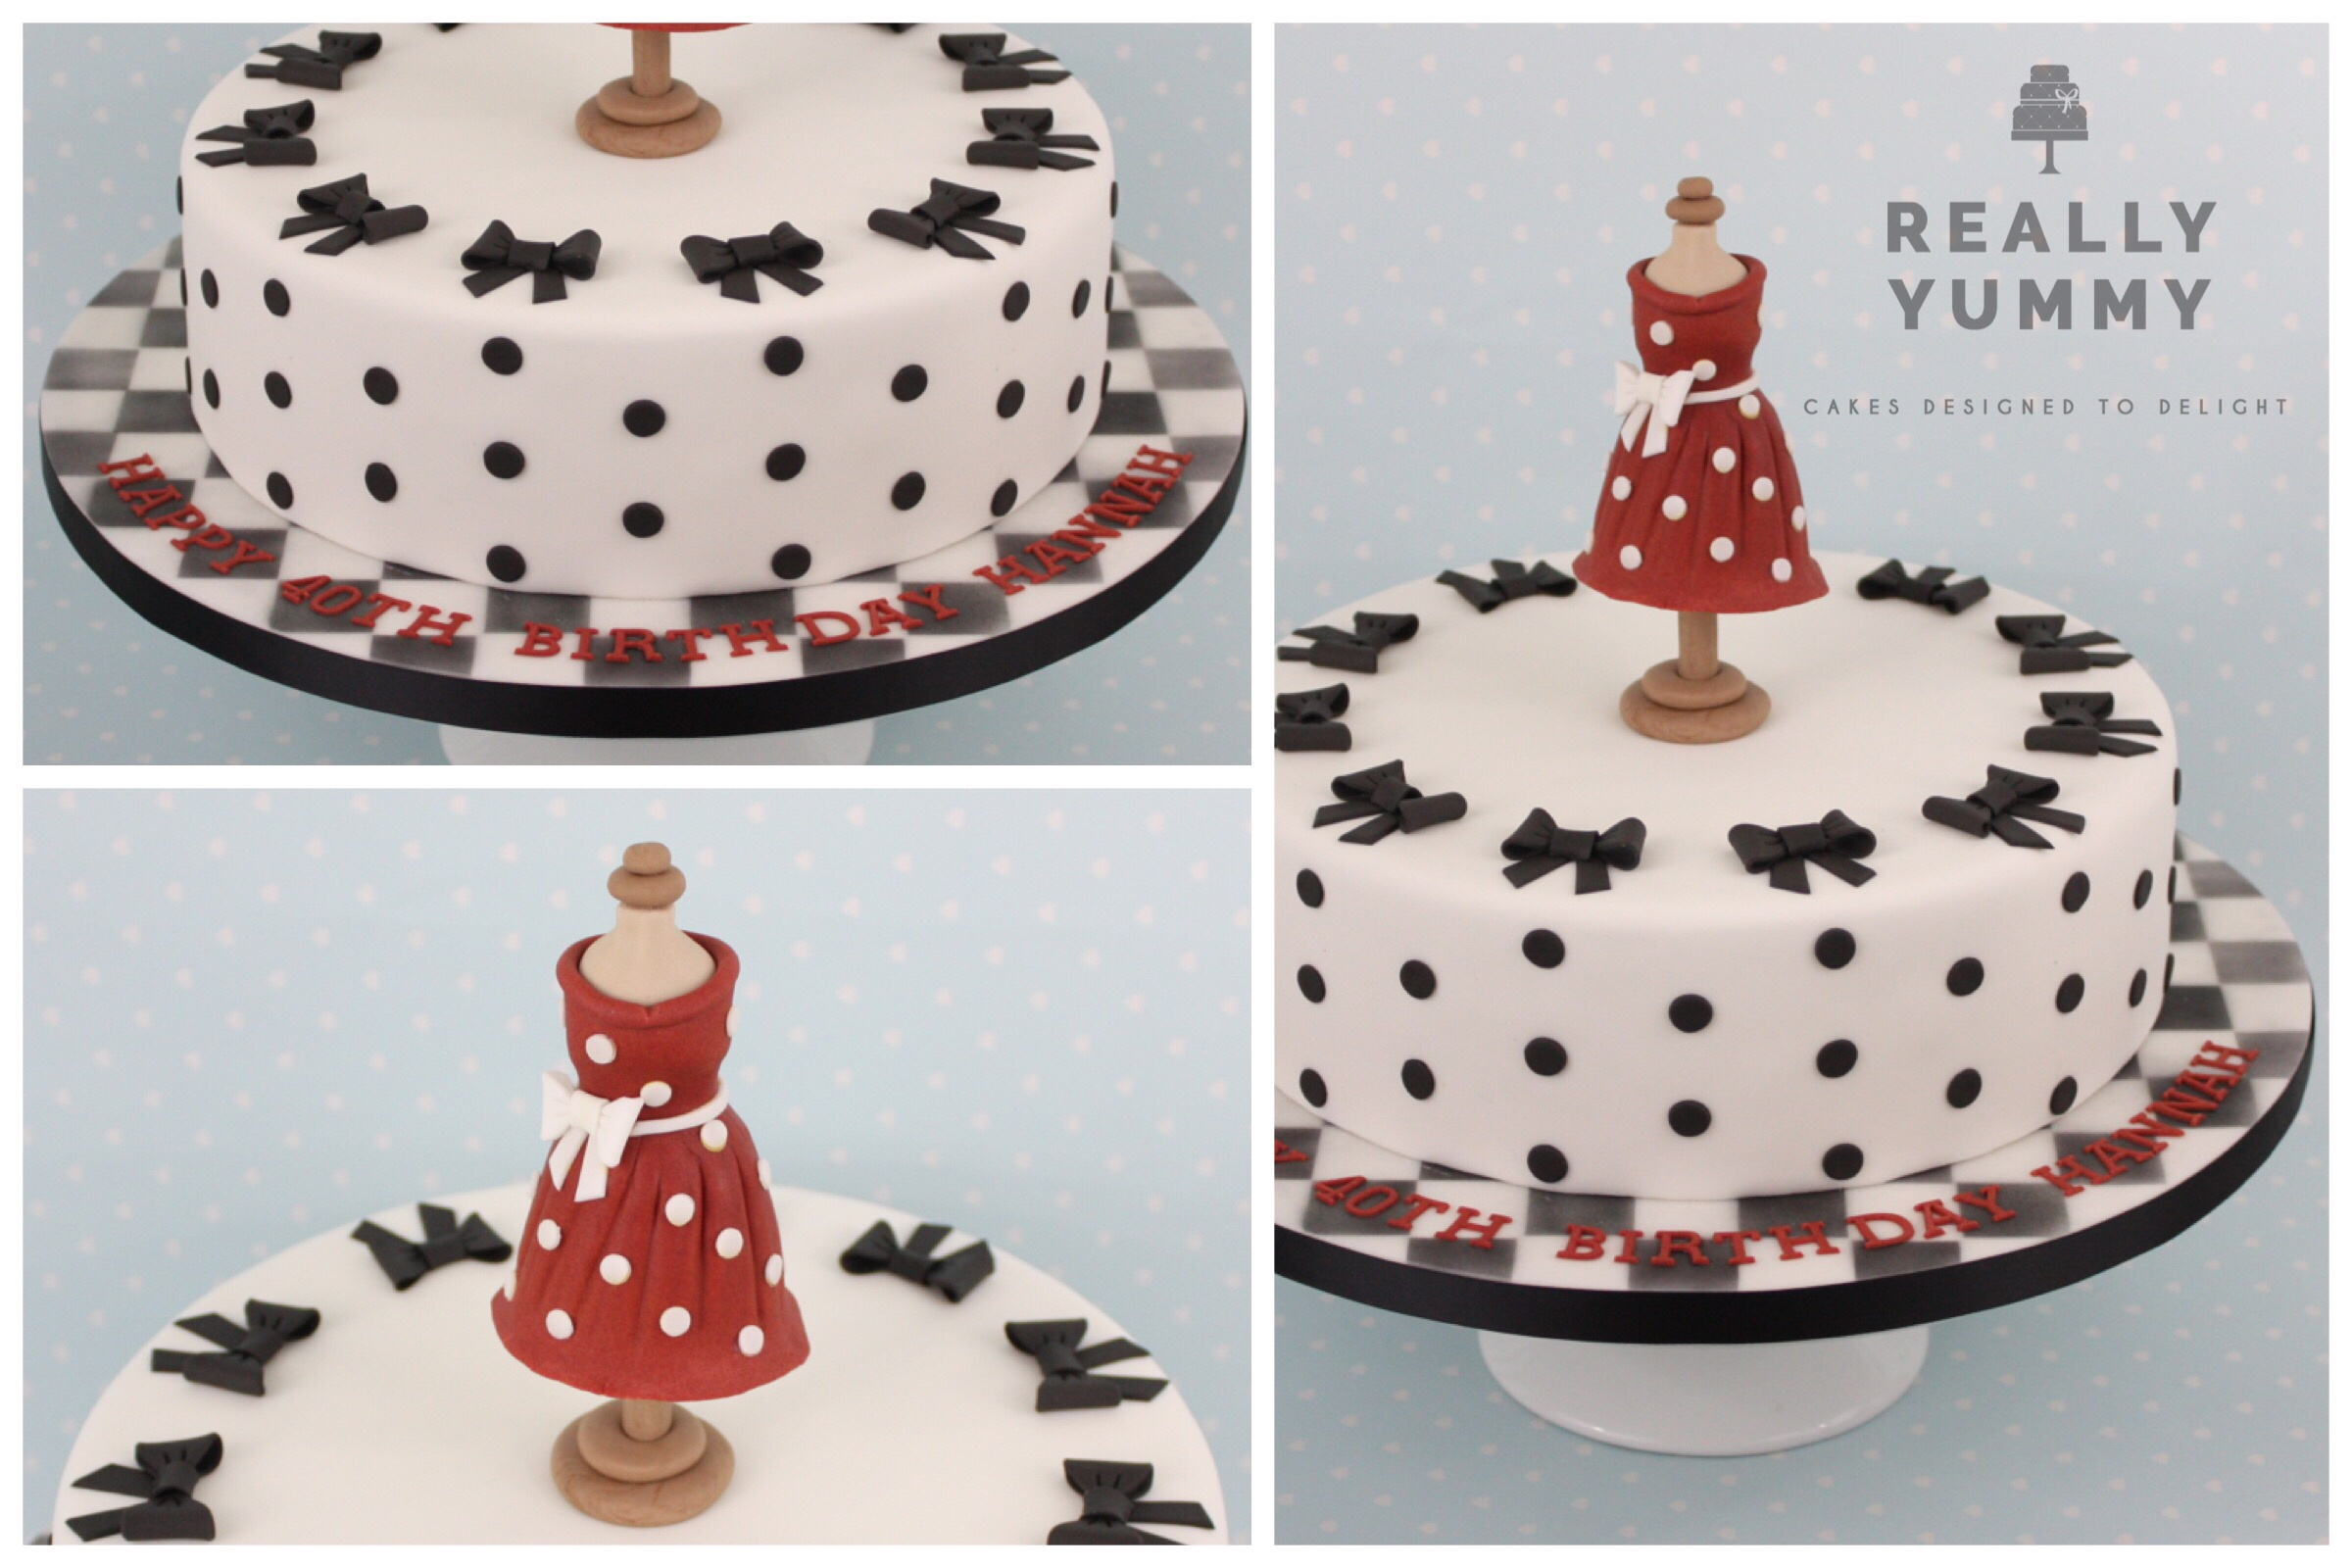 Hannah W. - My cake was amazing, not only did it look fantastic it tasted great too. It was just what I wanted for my 40th birthday, something sophisticated but fun at the same time.The service and product I received were top notch. It was efficient and to the highest standards. I would definitely use Really Yummy again.